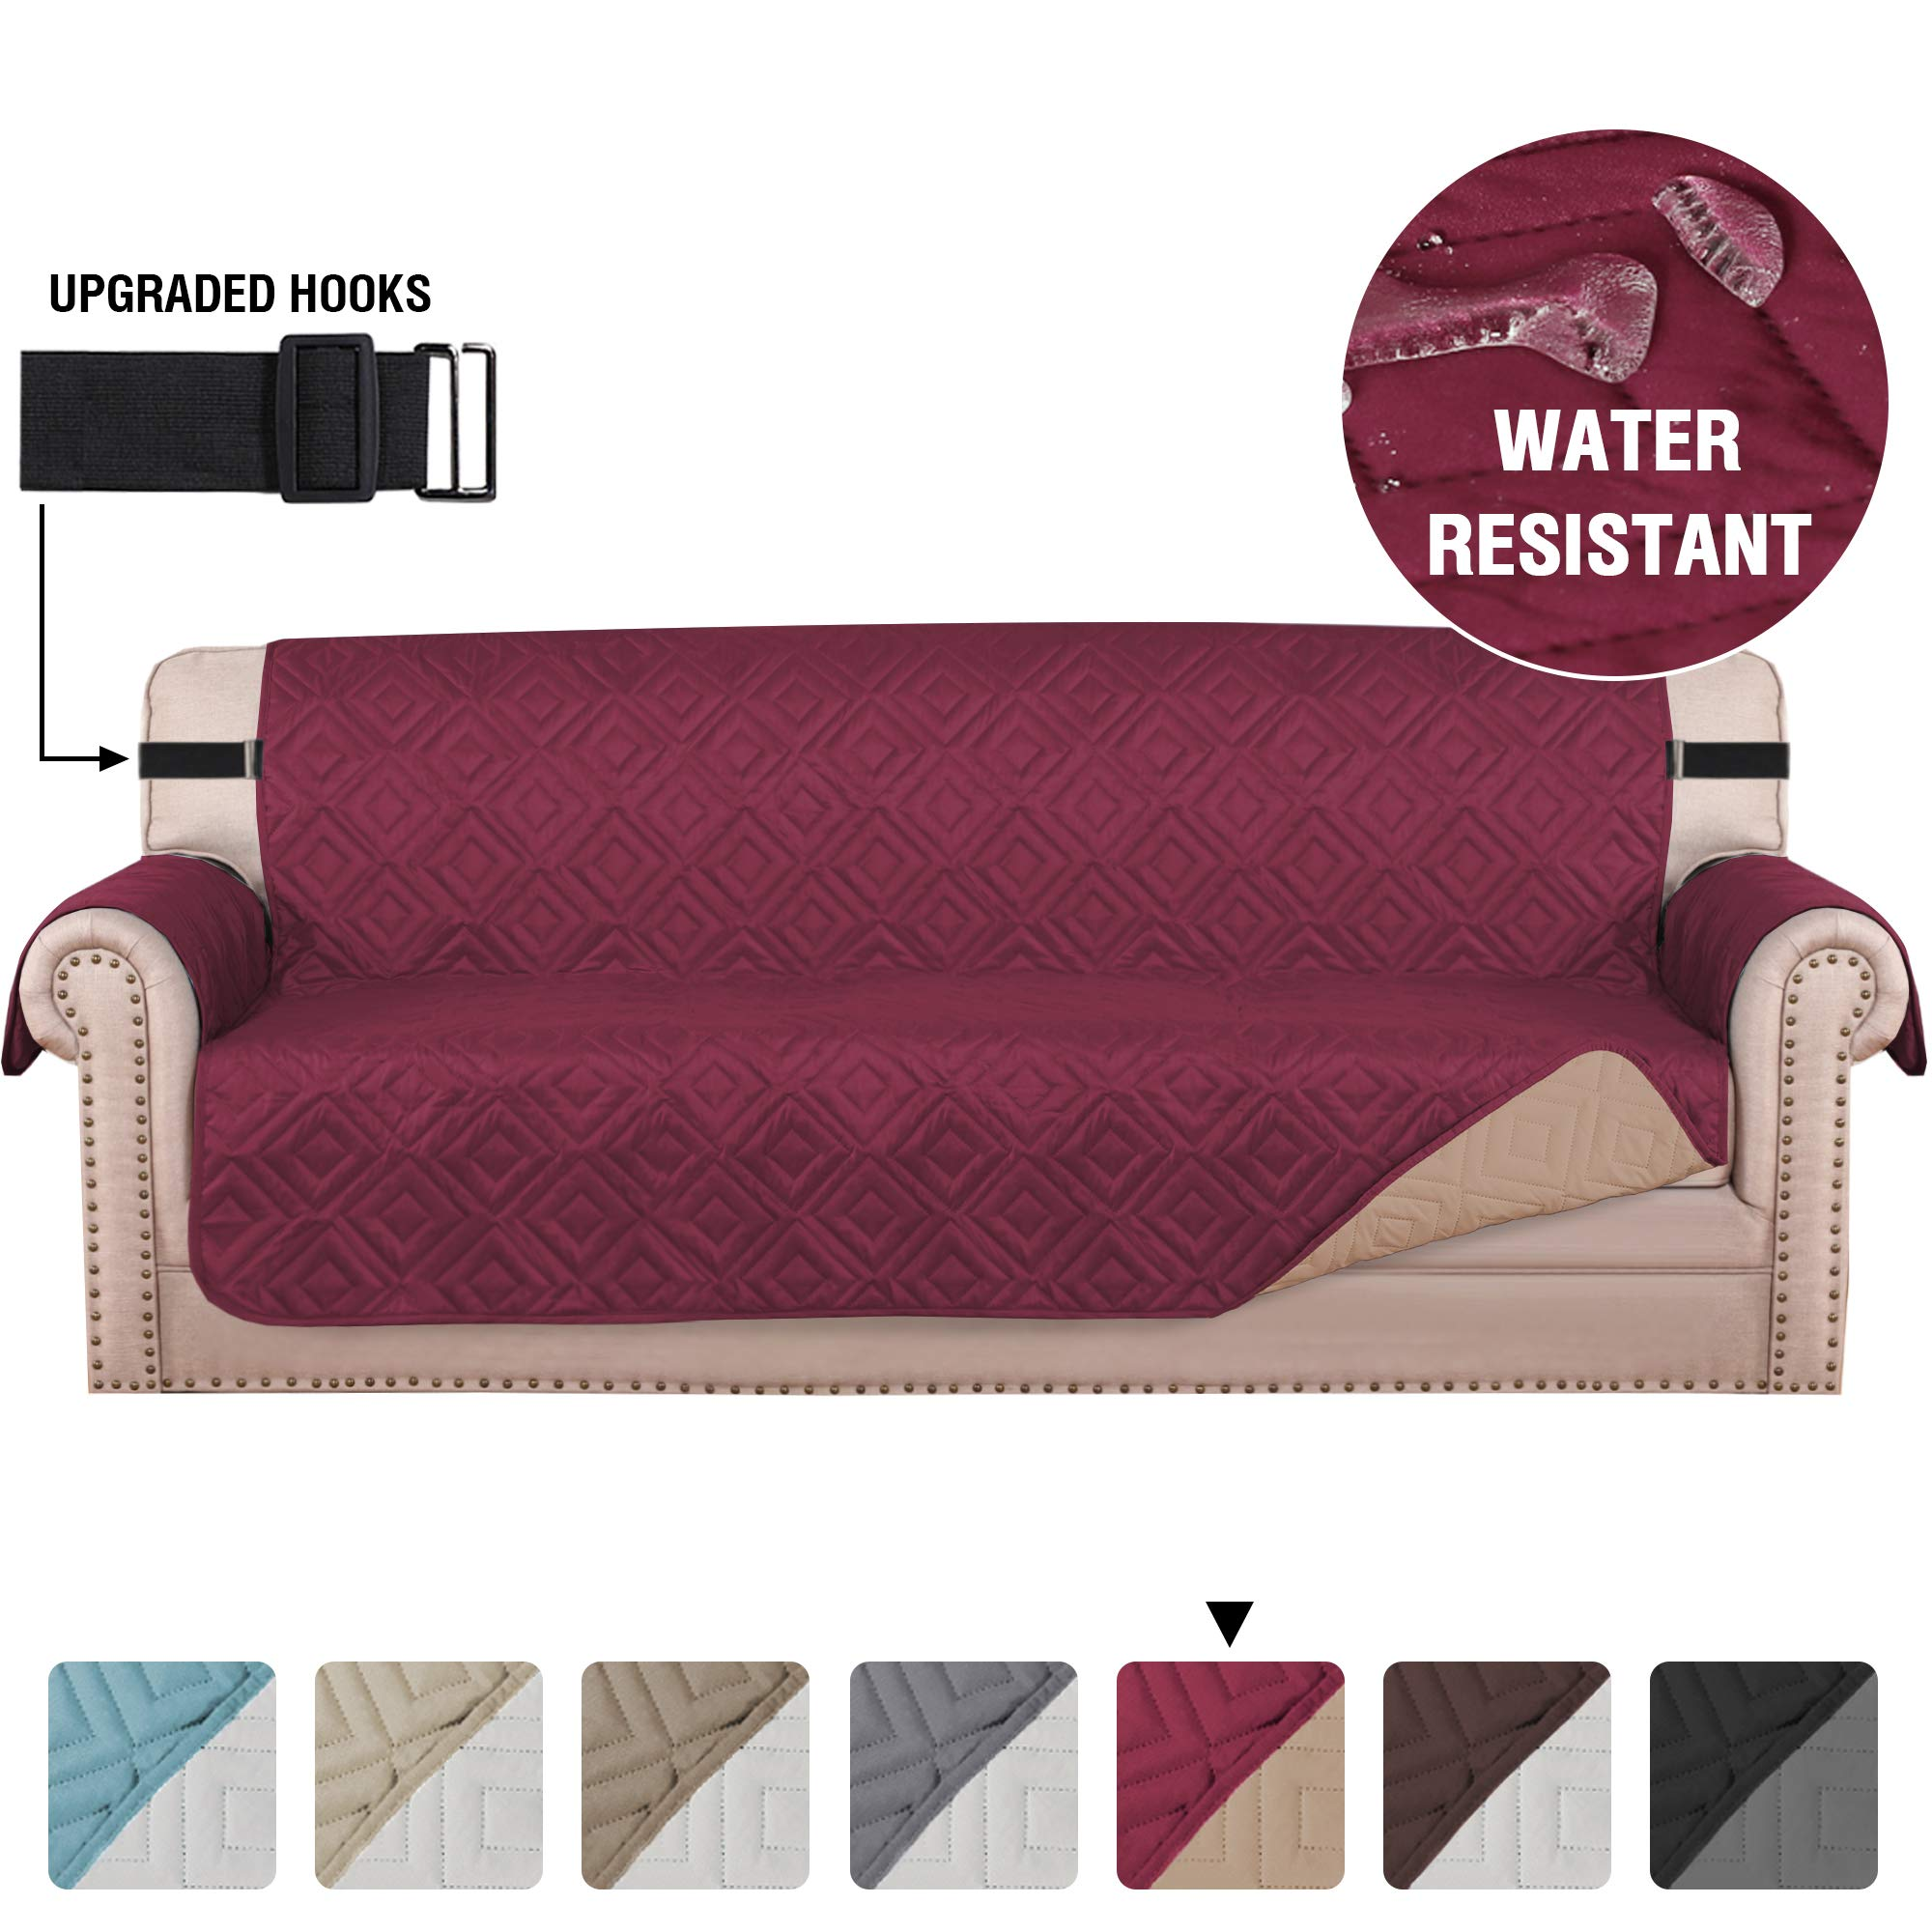 "Quilted Sofa Cover Protector Couch Cover Water Repellent Sofa Slipcover for Pets Dogs Furniture Protector Cover for 3 Cushion Couch, Non-Slip (Extra Wide Sofa 78"", Reversible Burgundy/Beige)"